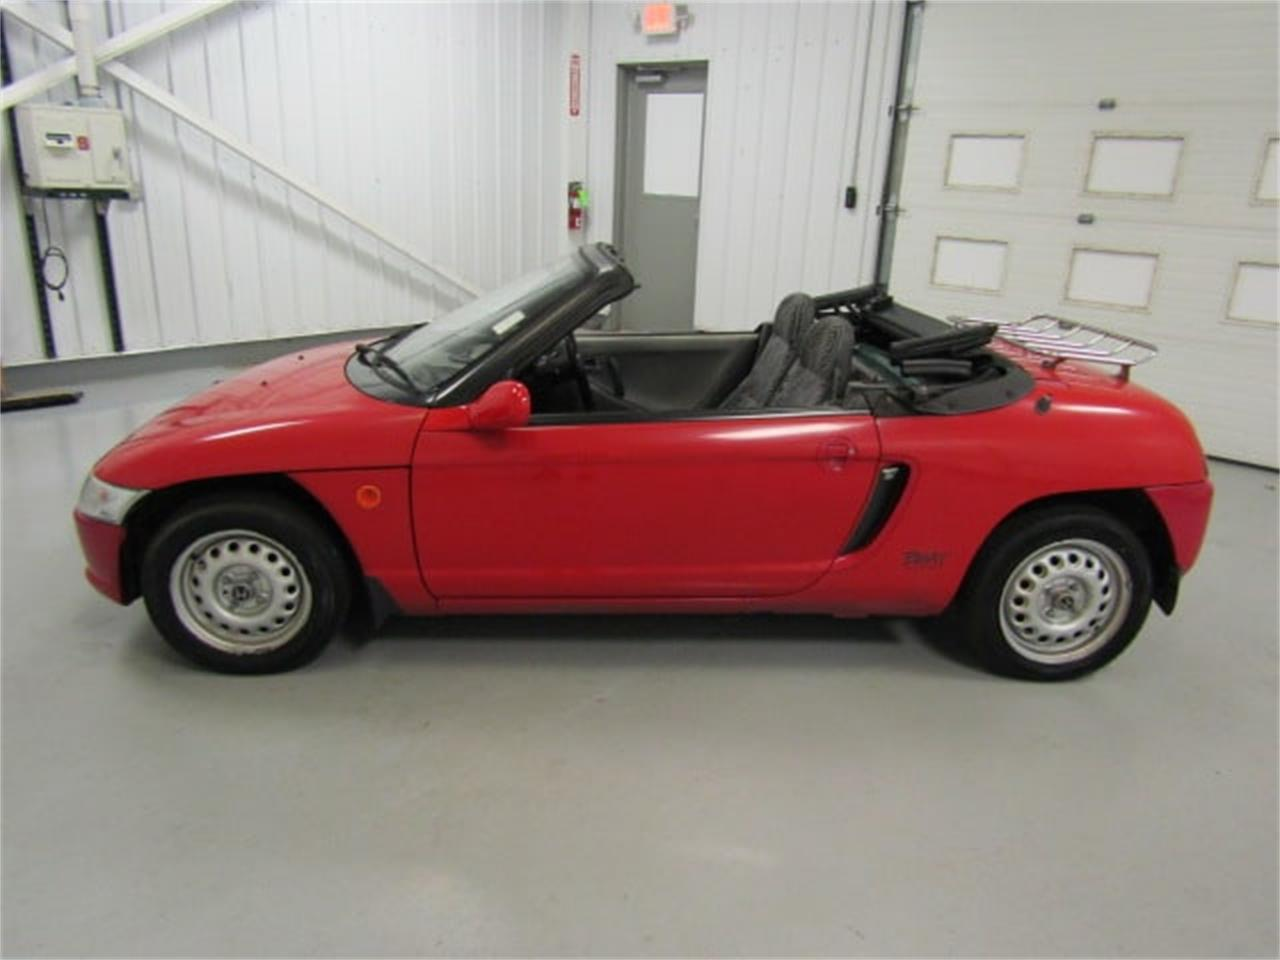 Large Picture of 1991 Honda Beat located in Virginia - $5,990.00 Offered by Duncan Imports & Classic Cars - JL71